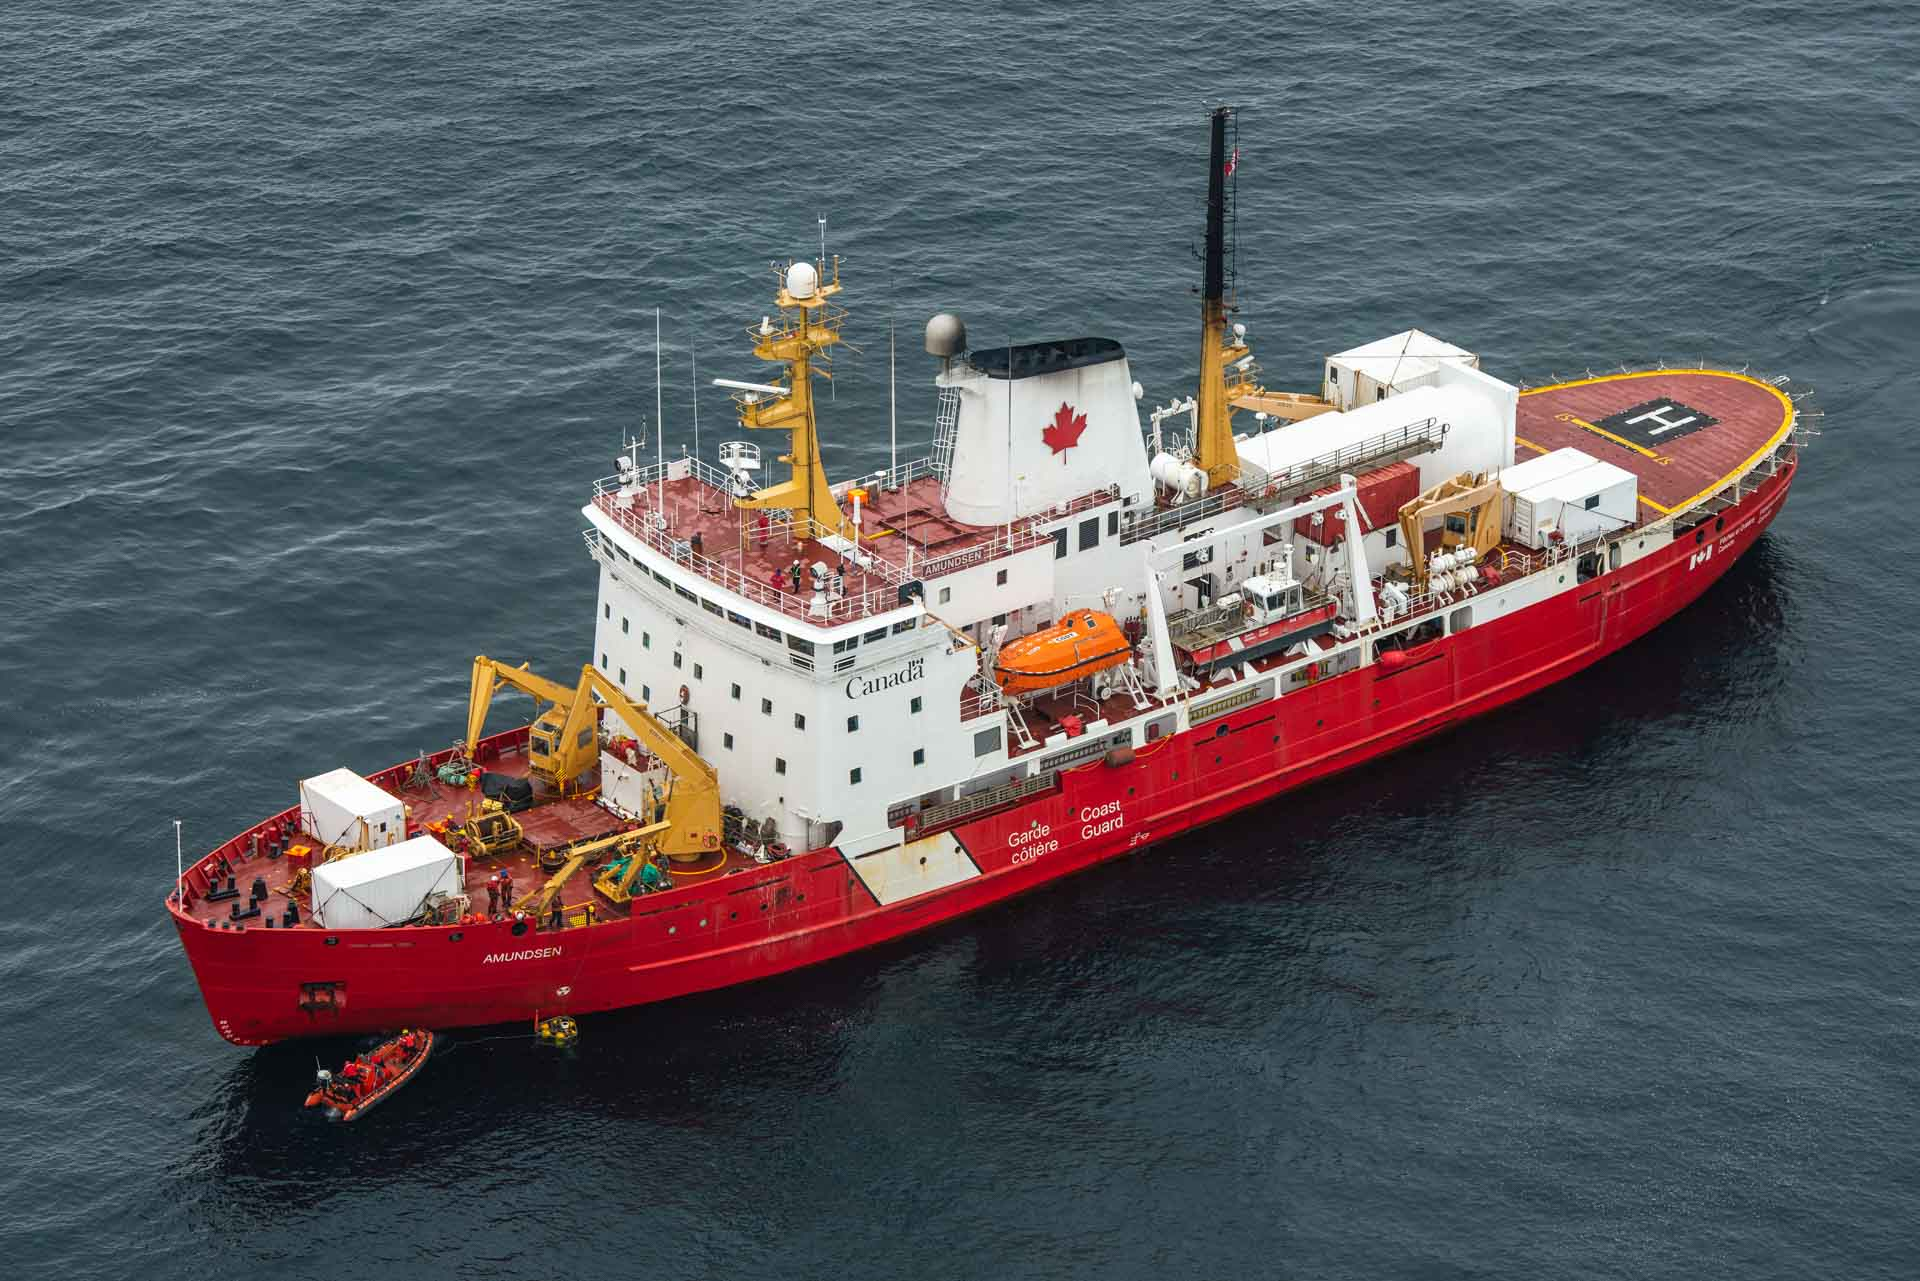 The CCGS Amundsen showing the lander alongside, (c) Alex Ingle, ELU Images